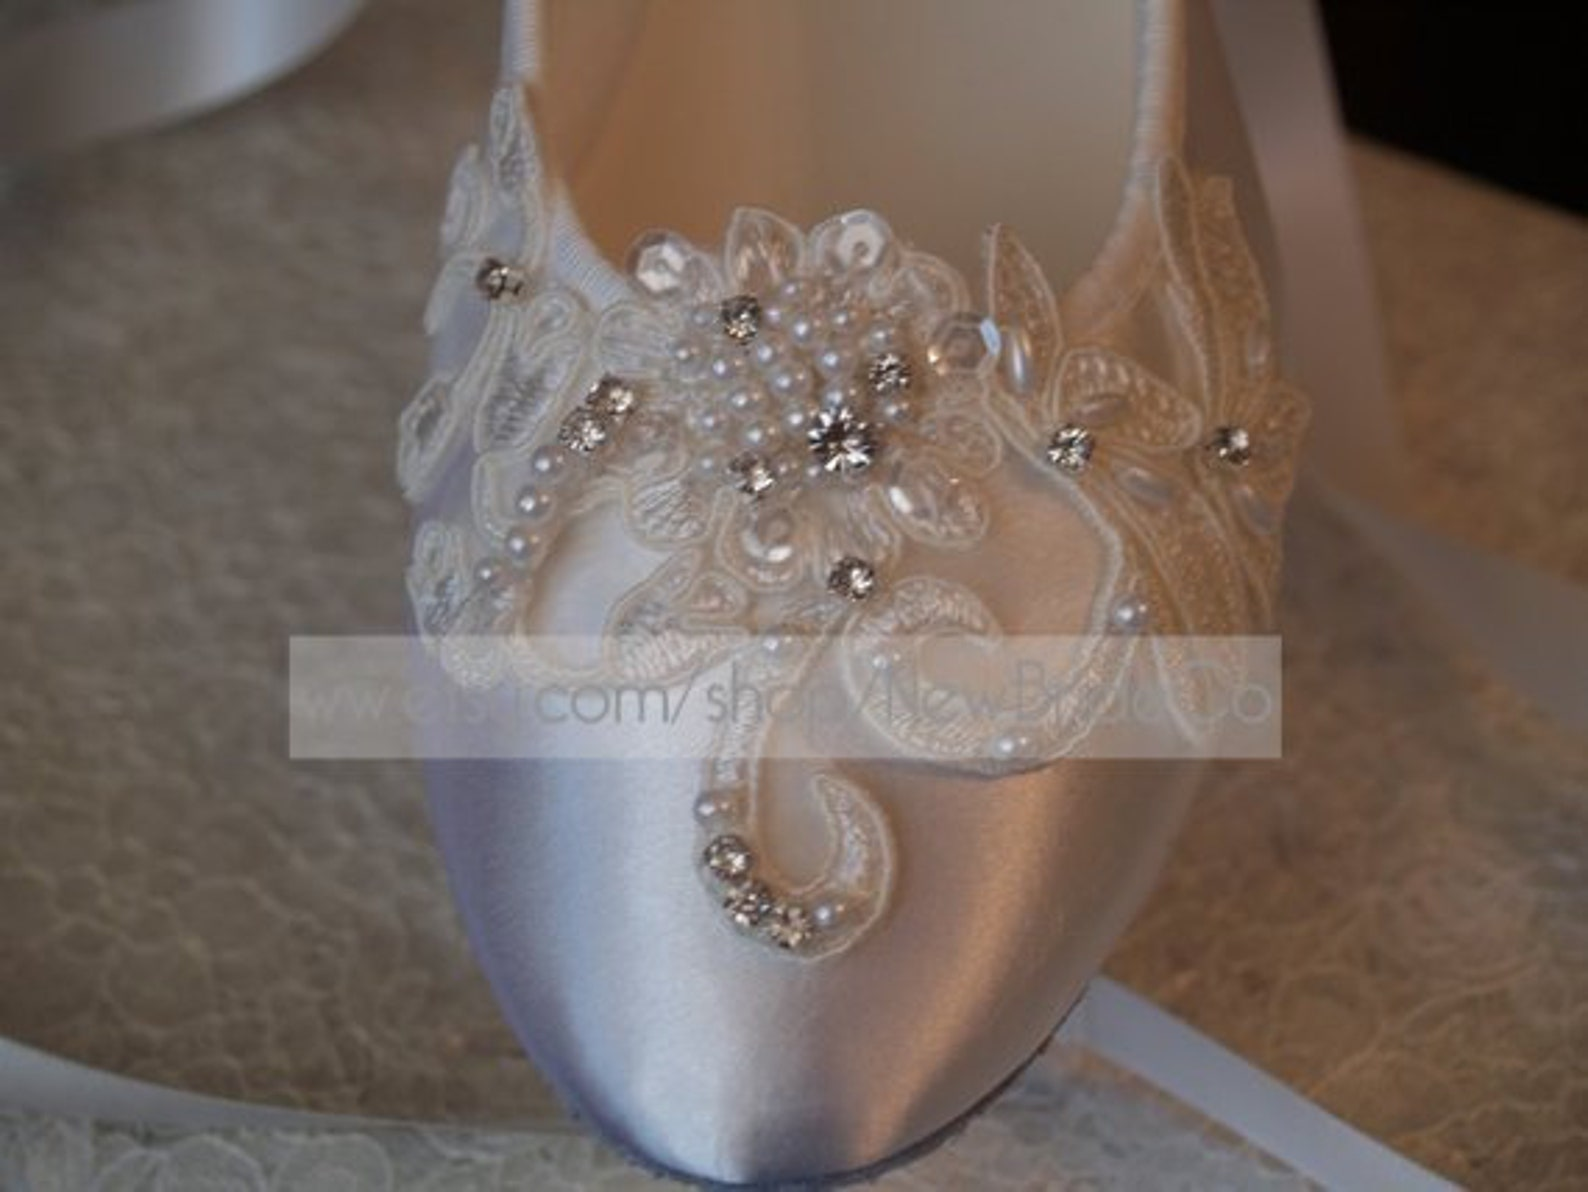 brides white wedding flats, satin ivory shoes, lace applique with pearls, lace up ribbon ballet style slipper, comfortable weddi